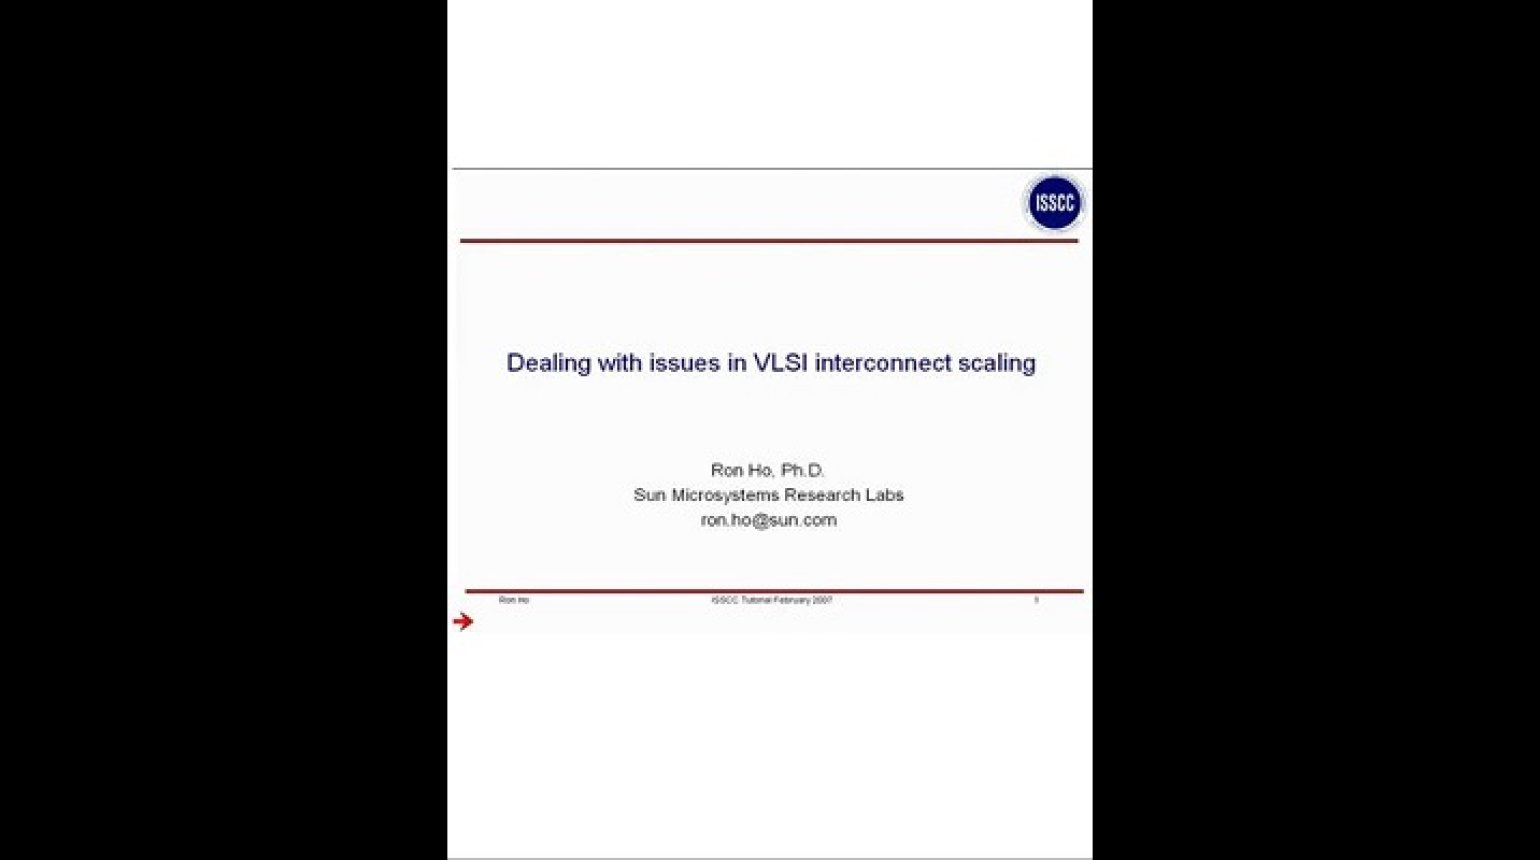 Dealing with issues in VLSI interconnect scaling Video